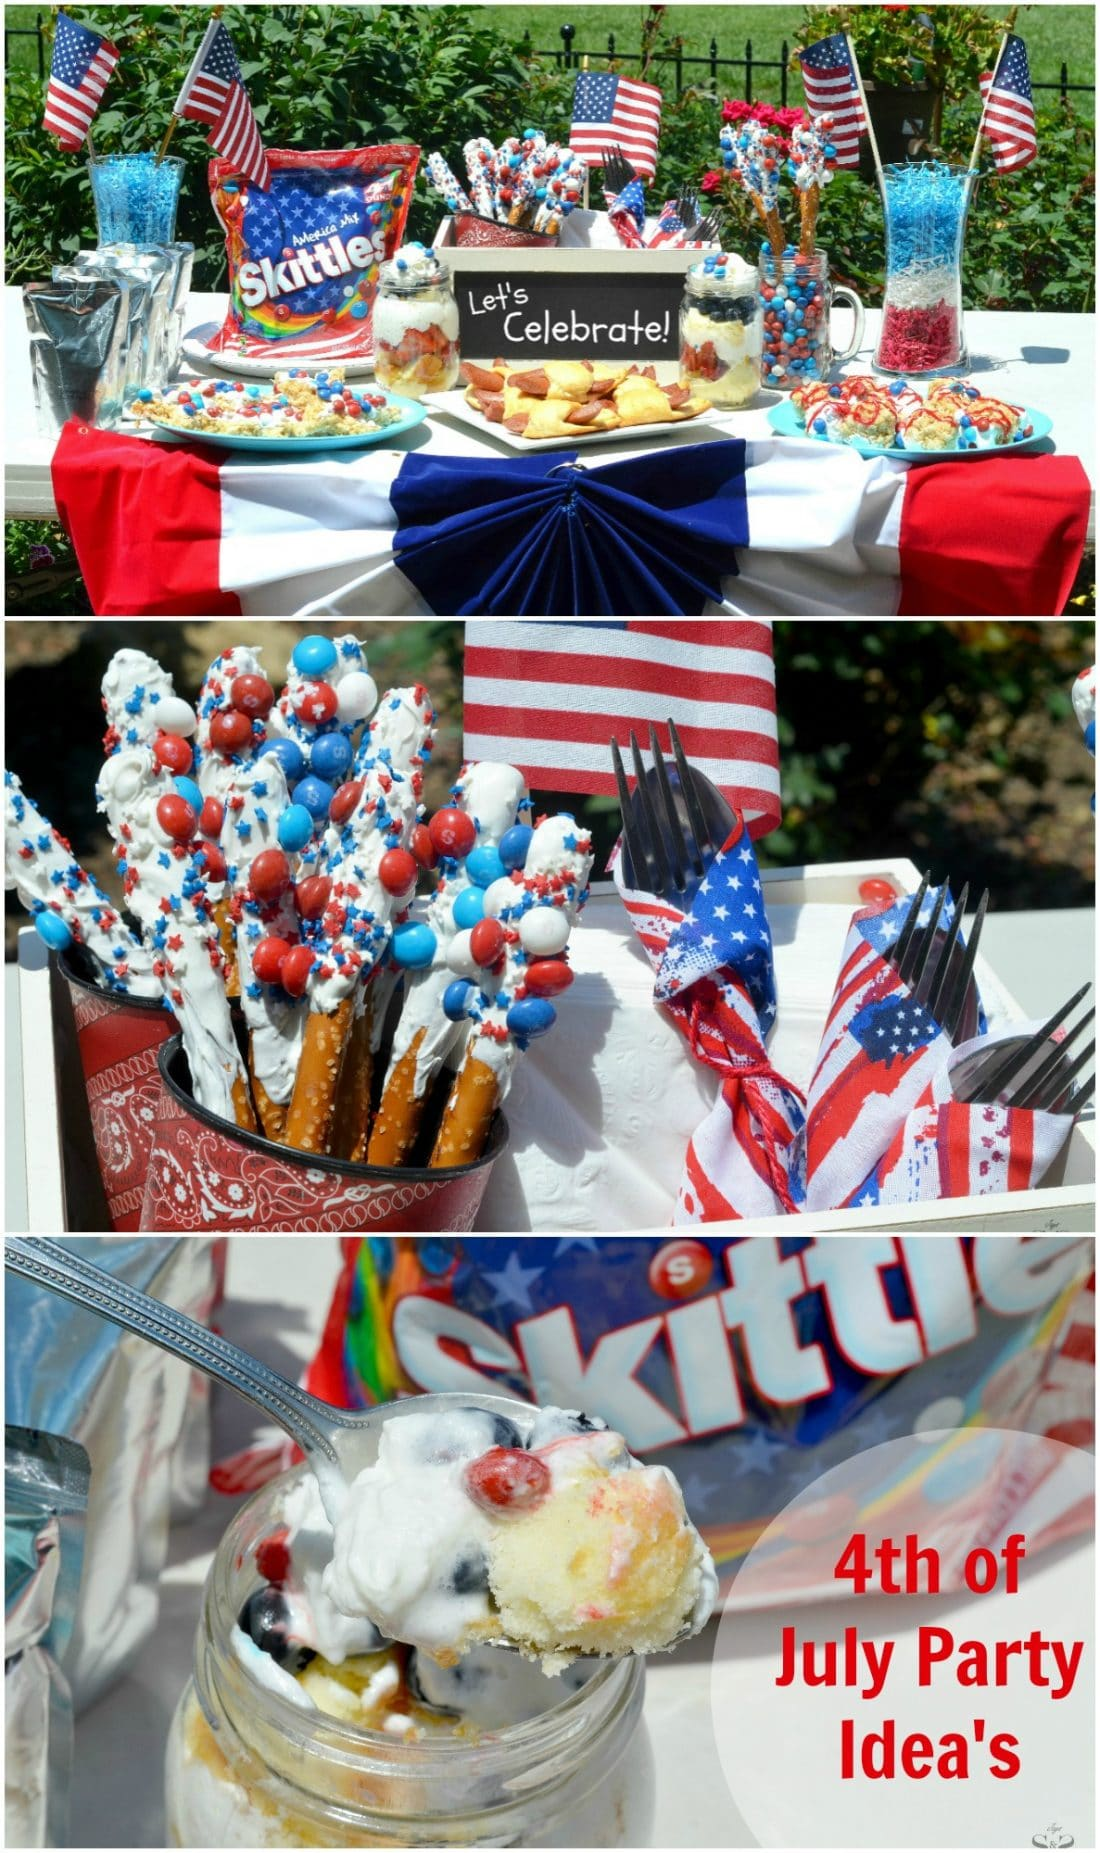 Skittles 4th of July Ideas shareable